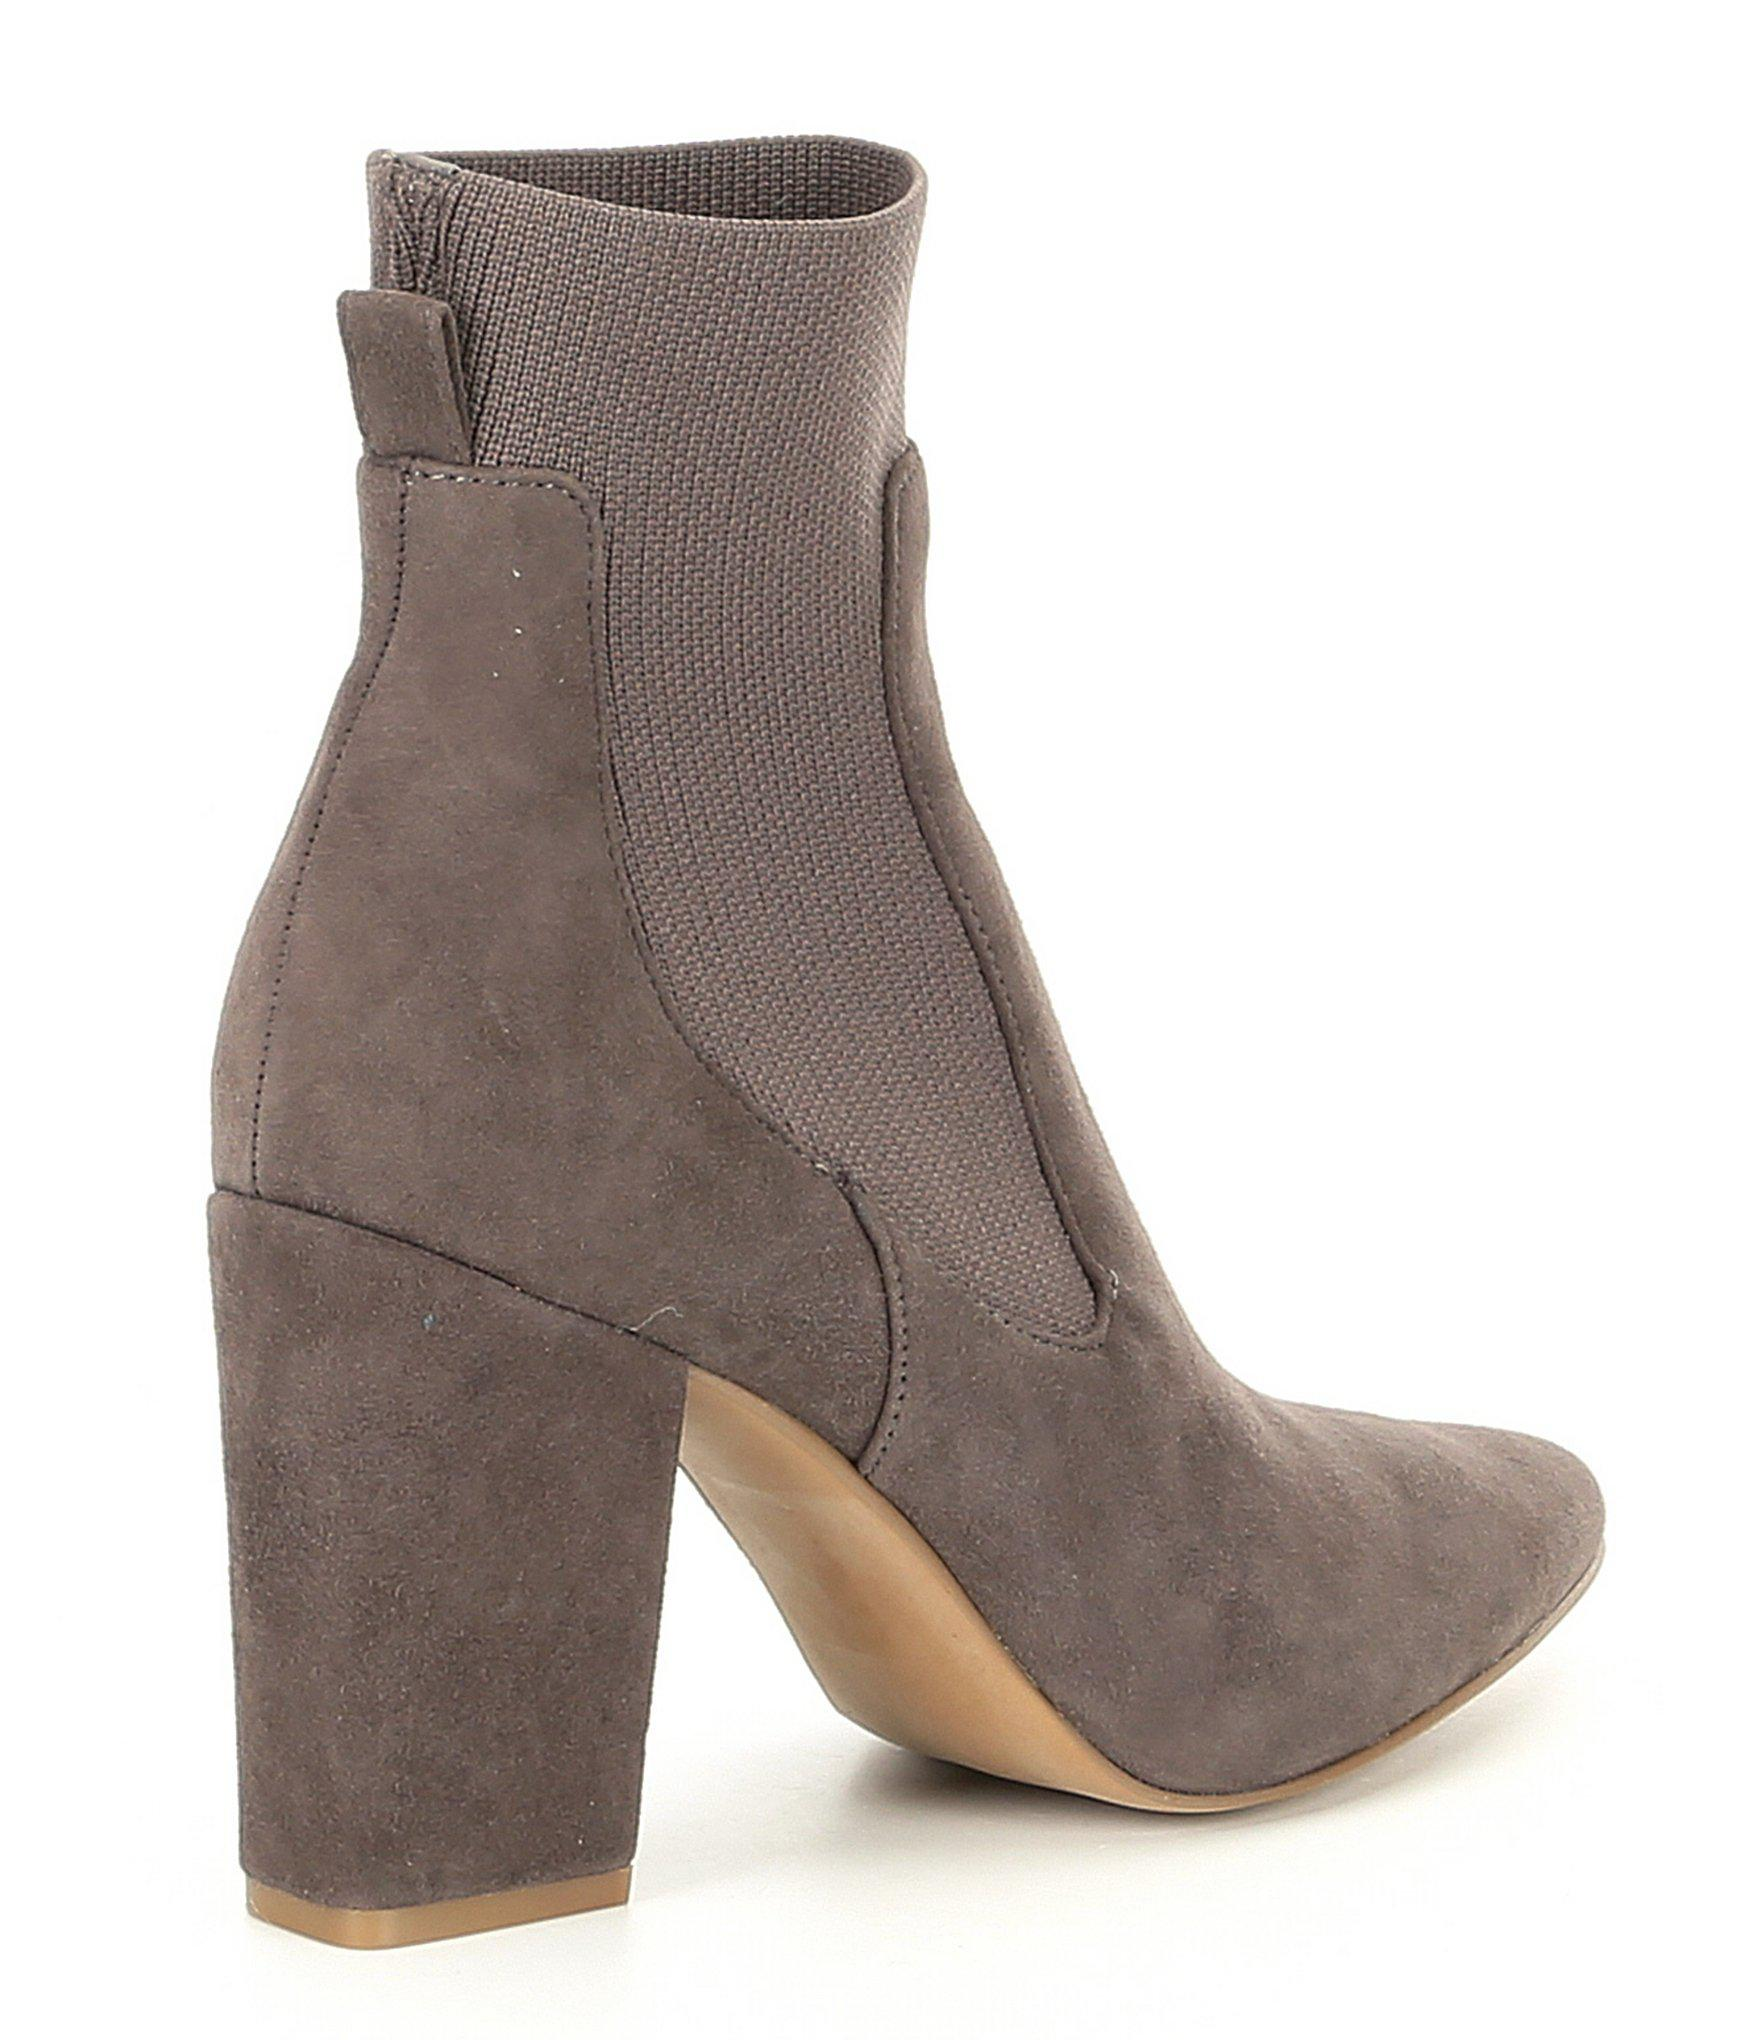 34323163138 Lyst - Steve Madden Richter Suede Block Heel Booties in Gray